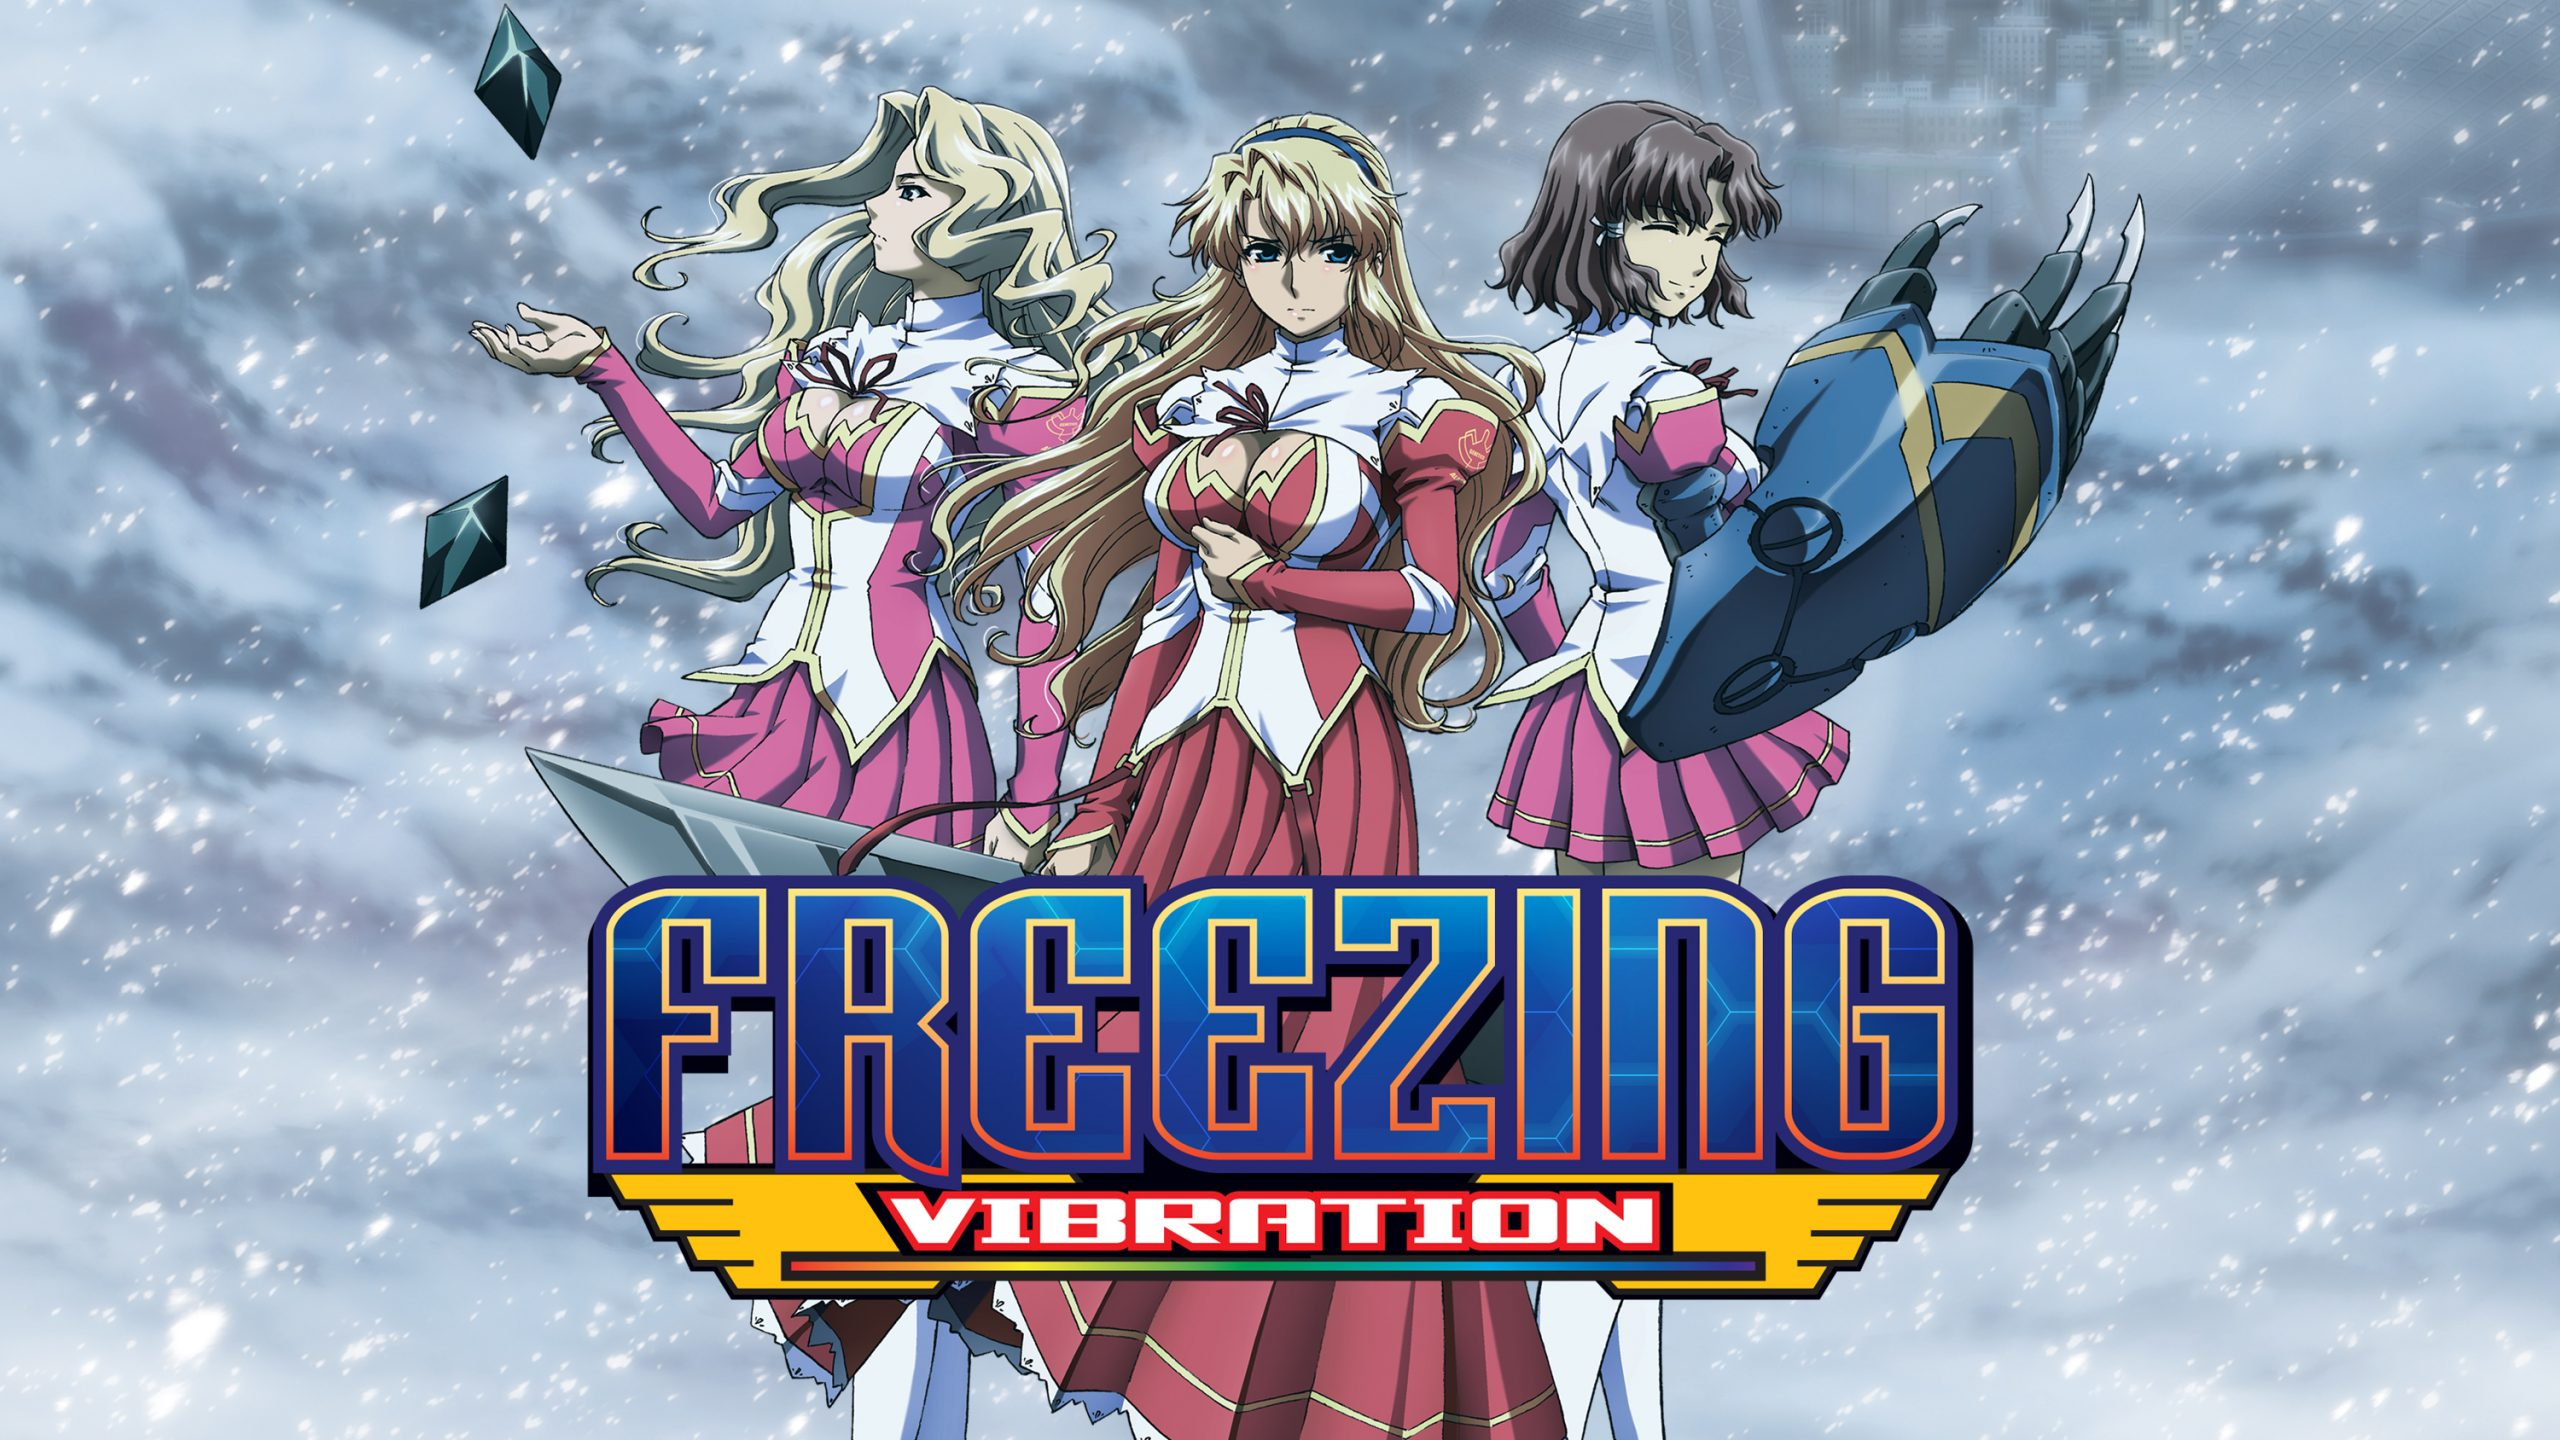 Freezing scaled